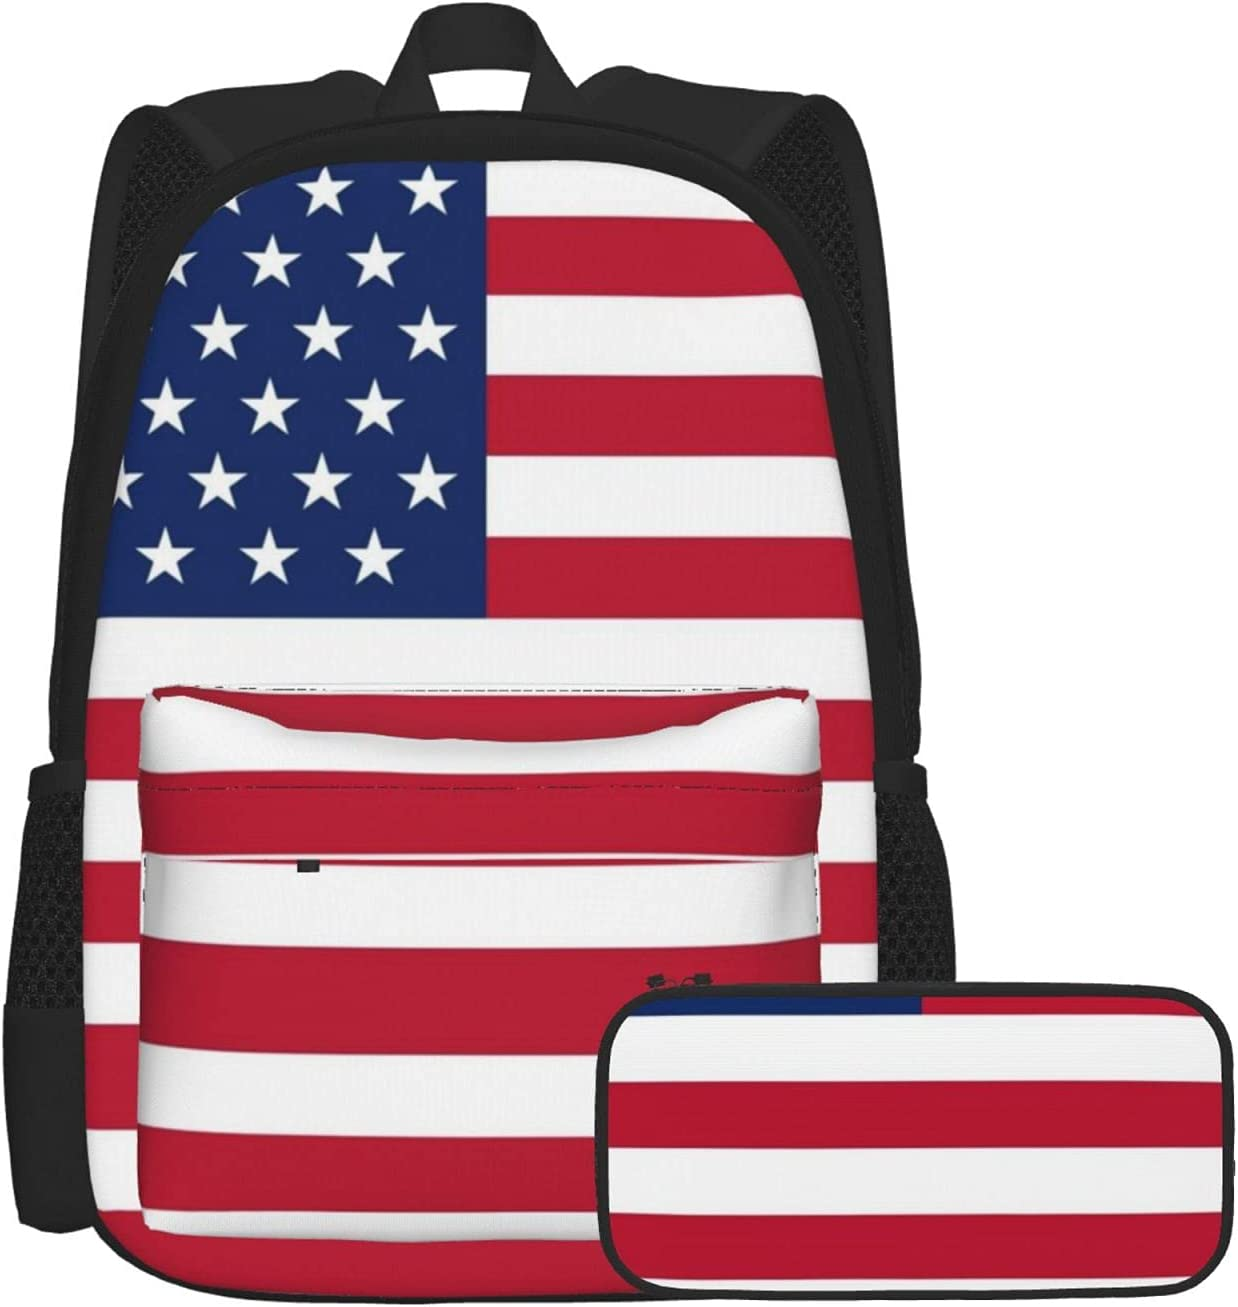 KAMIZE American Flag Fresno Mall 2pcs BackpackPencil 3d Printed Case Ca 1 year warranty Set